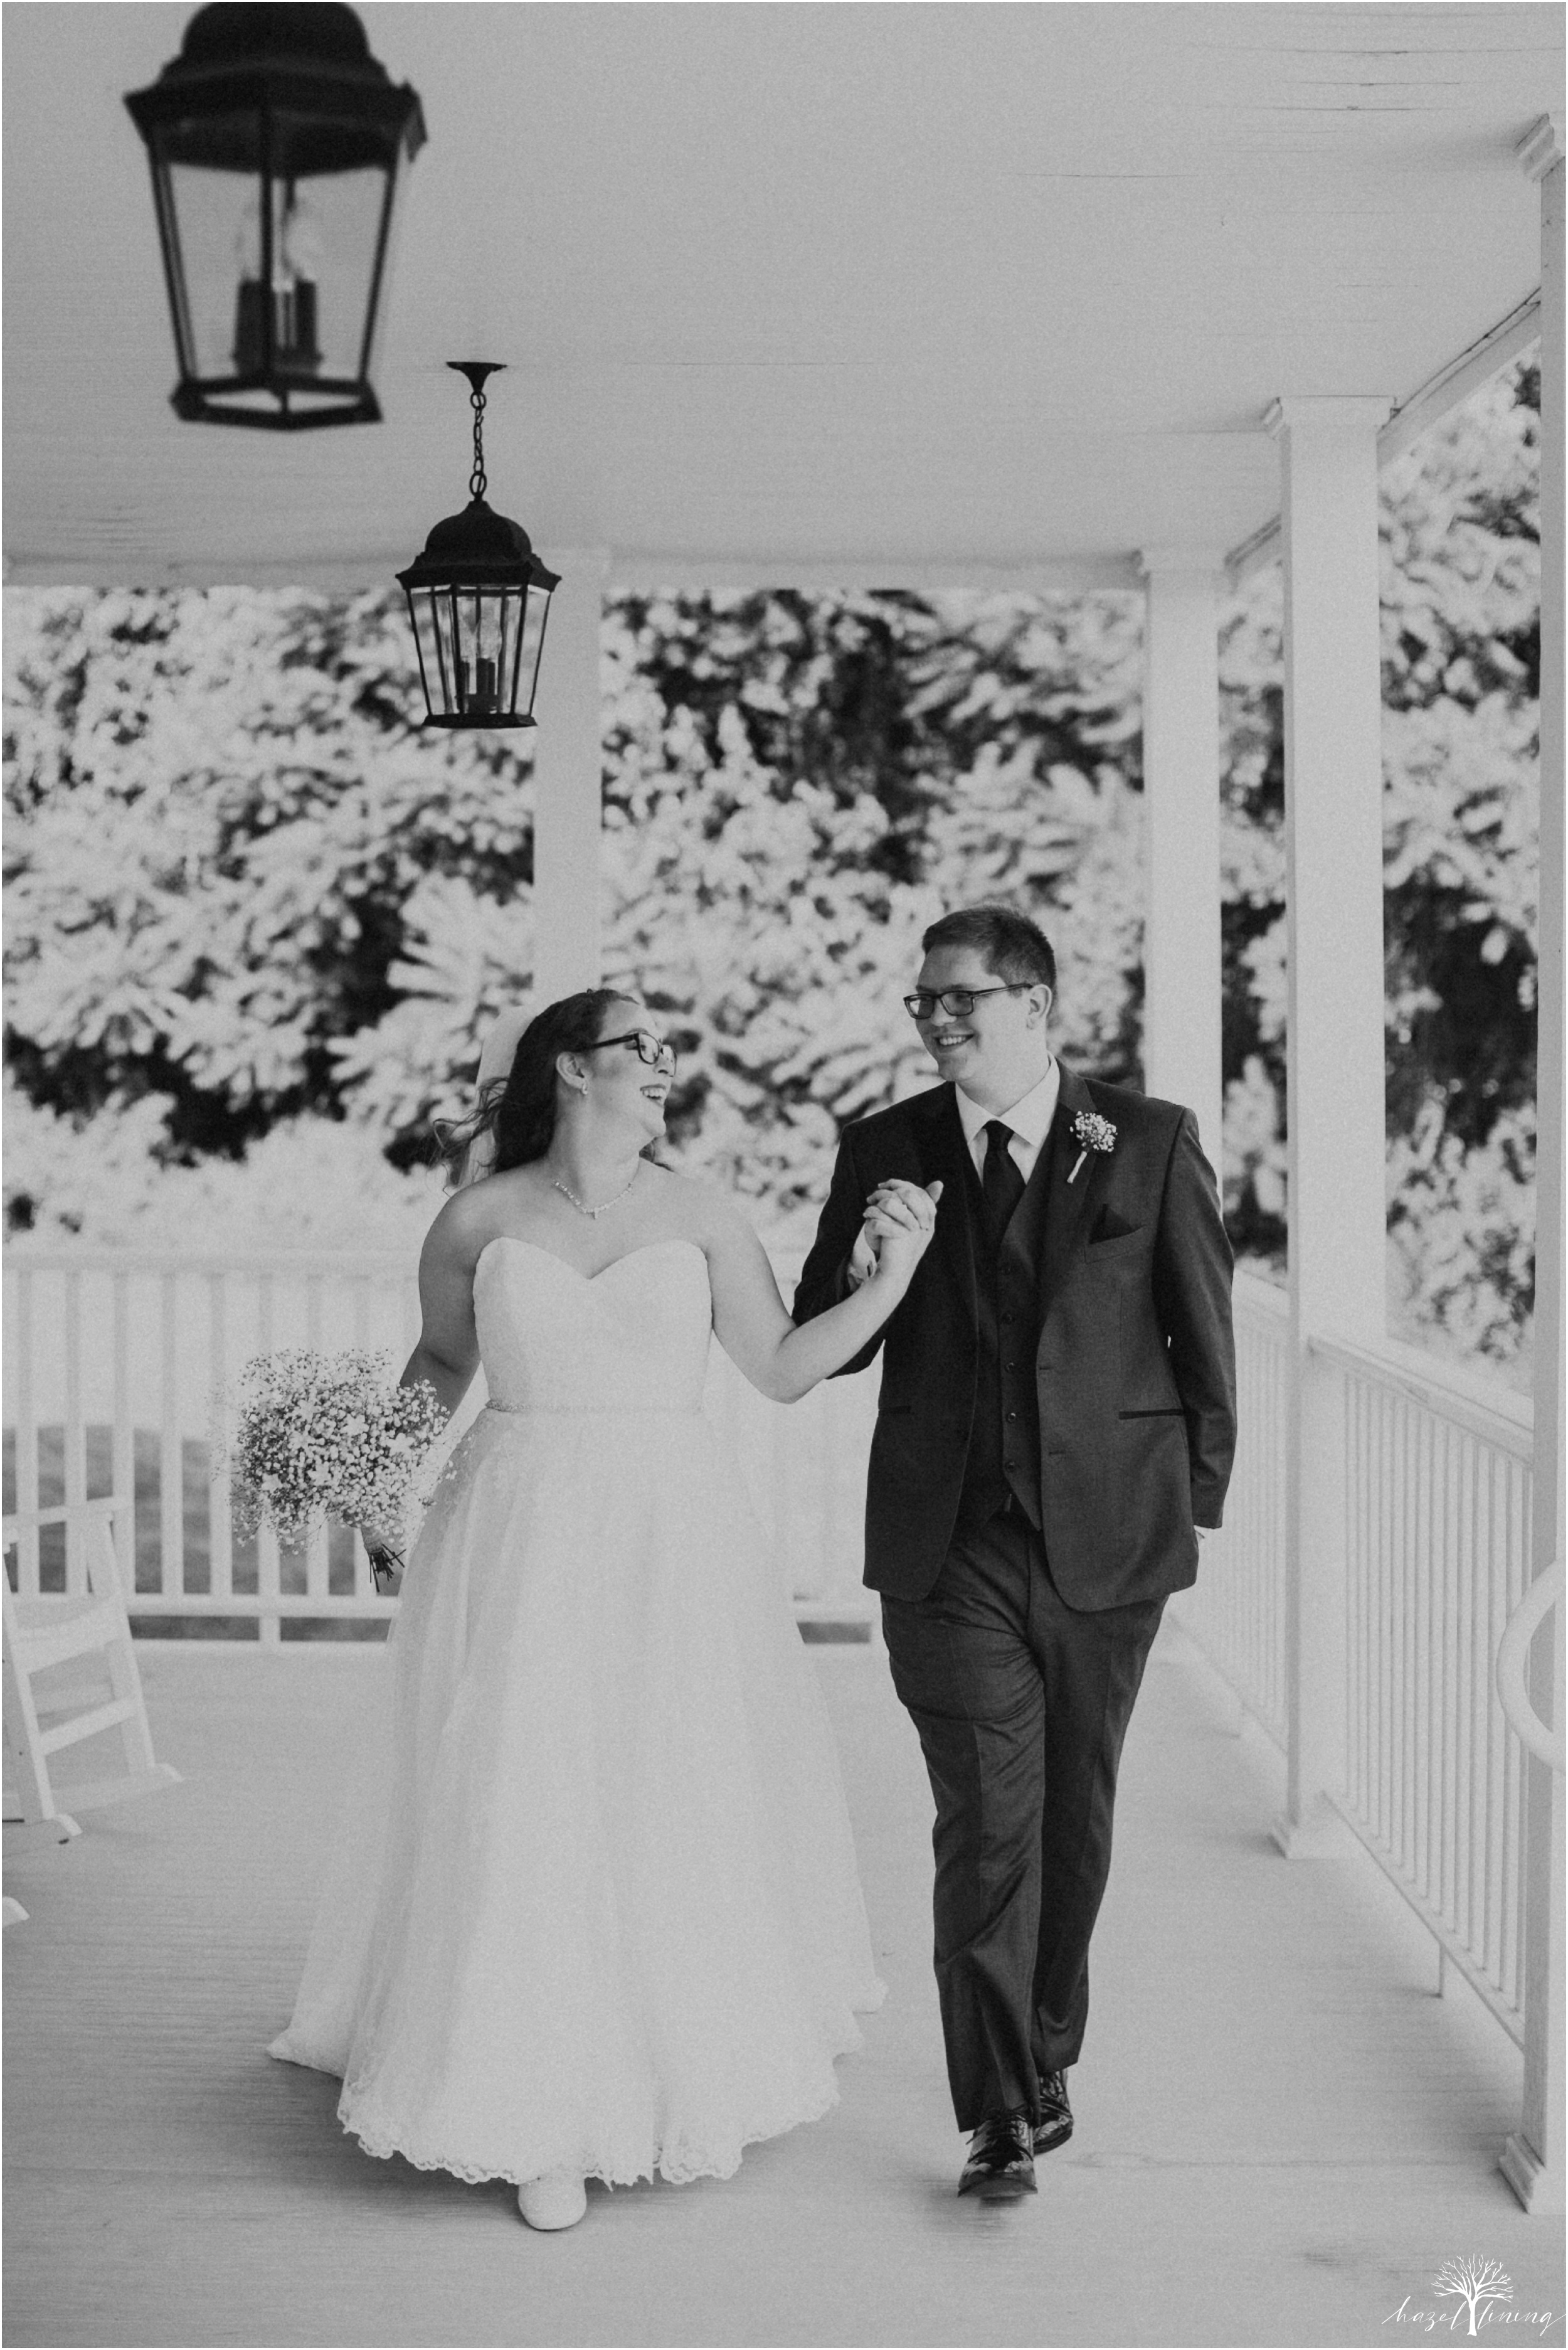 laura-zach-mccaskill-harmony-hall-lebanon-valley-college-summer-wedding-hazel-lining-photography-destination-elopement-wedding-engagement-photography_0099.jpg